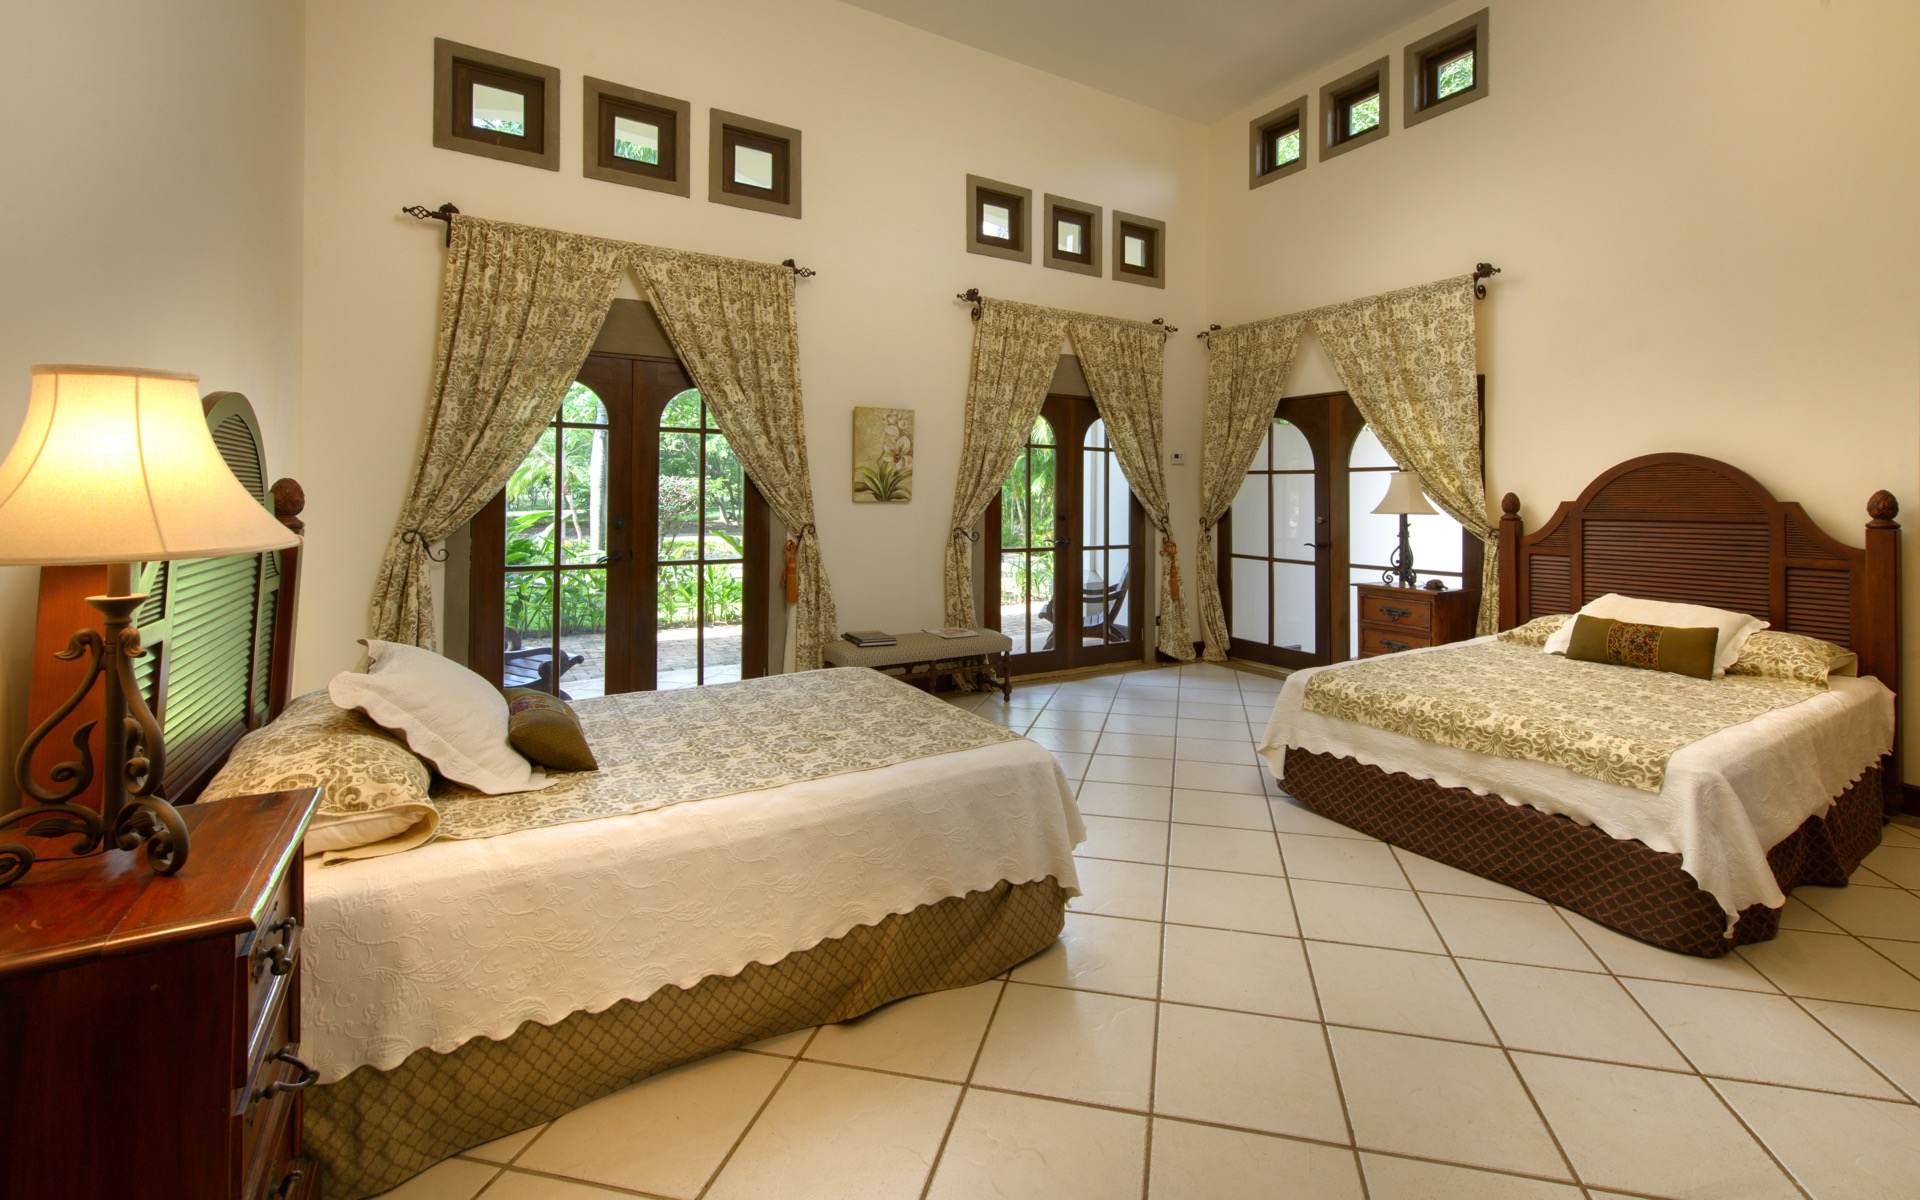 Guest Bedroom with Full Beds